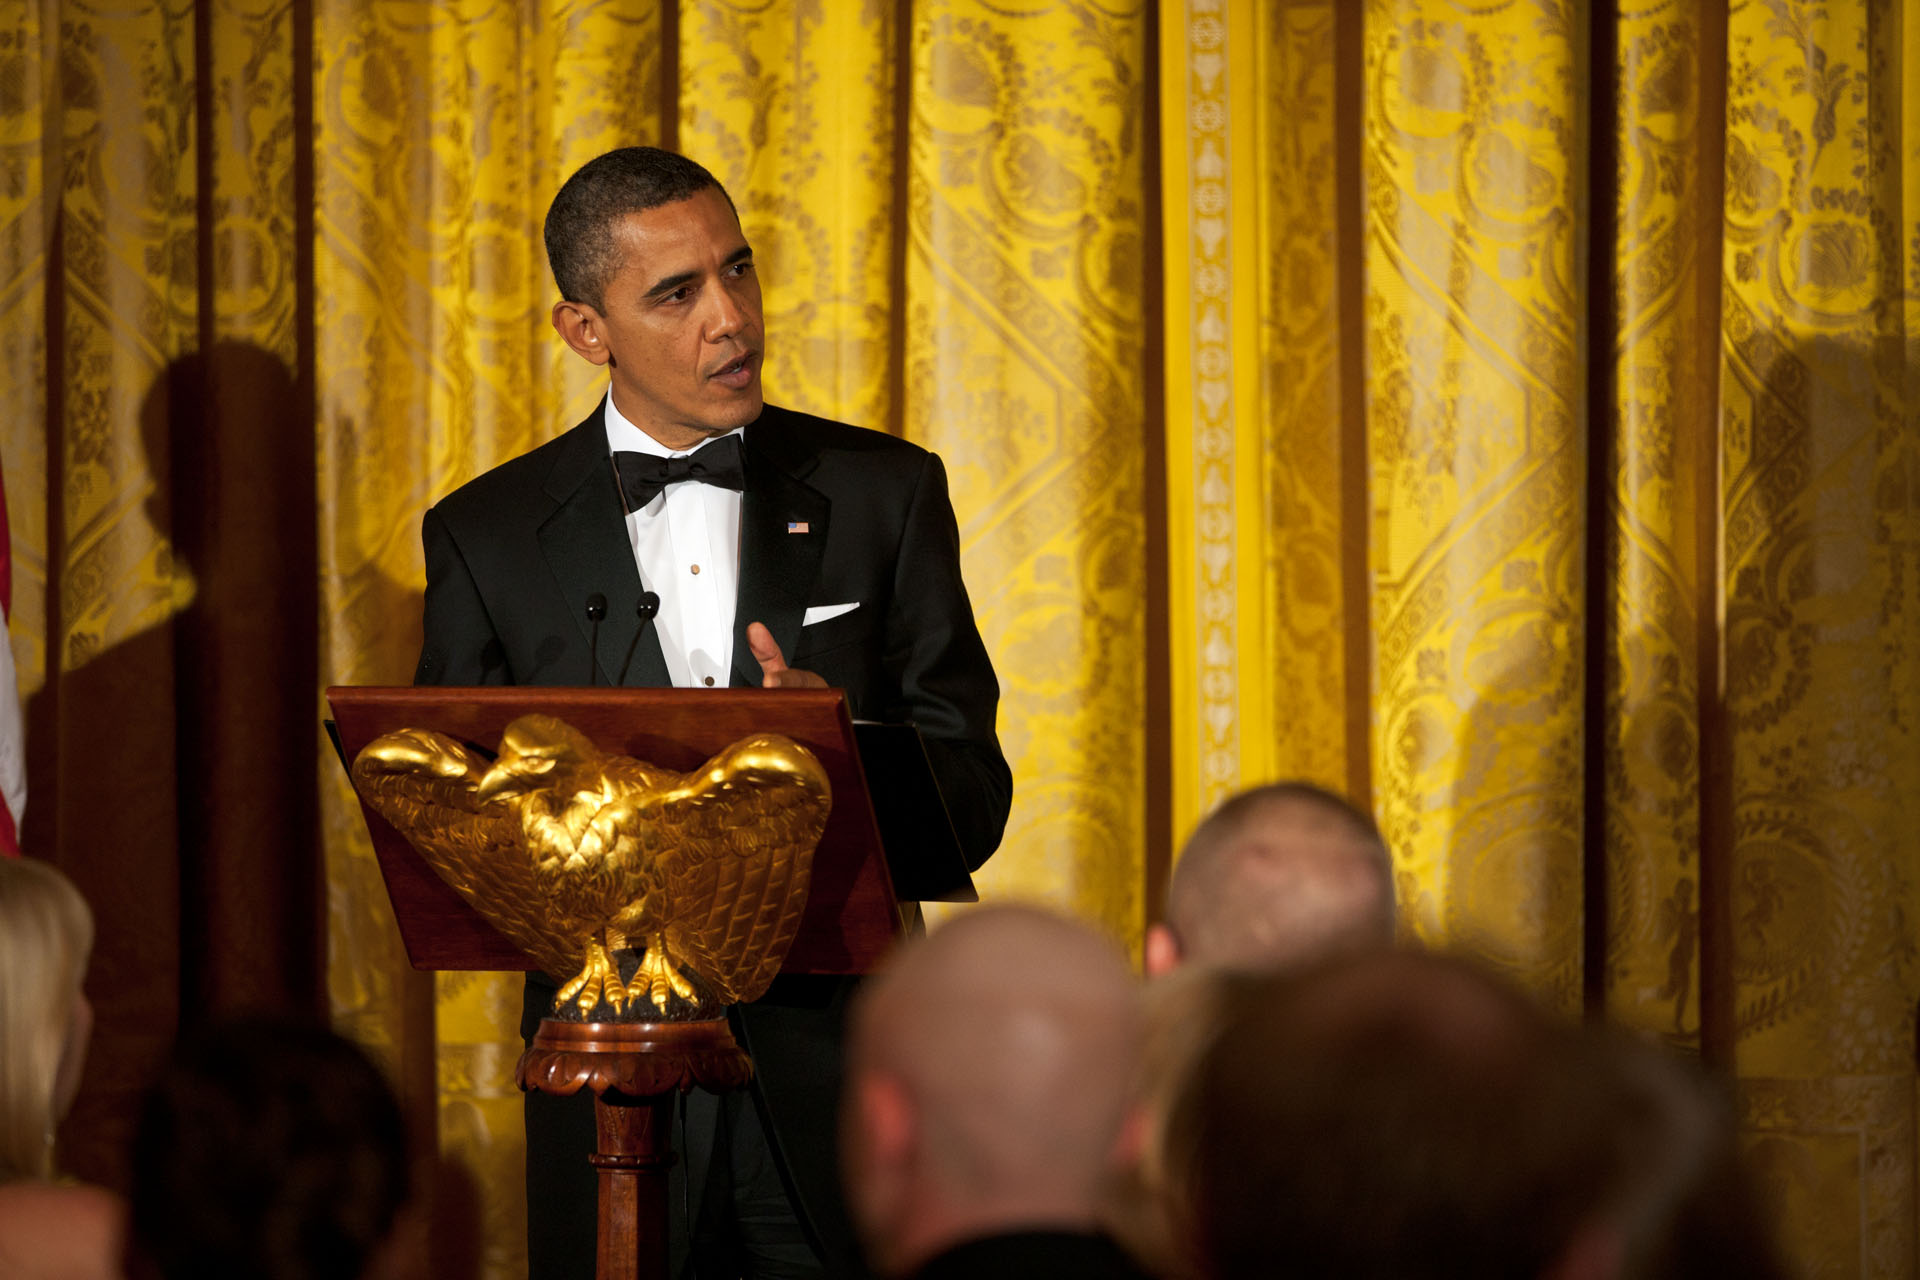 President Barack Obama delivers remarks at a dinner to honor Iraq War Veterans